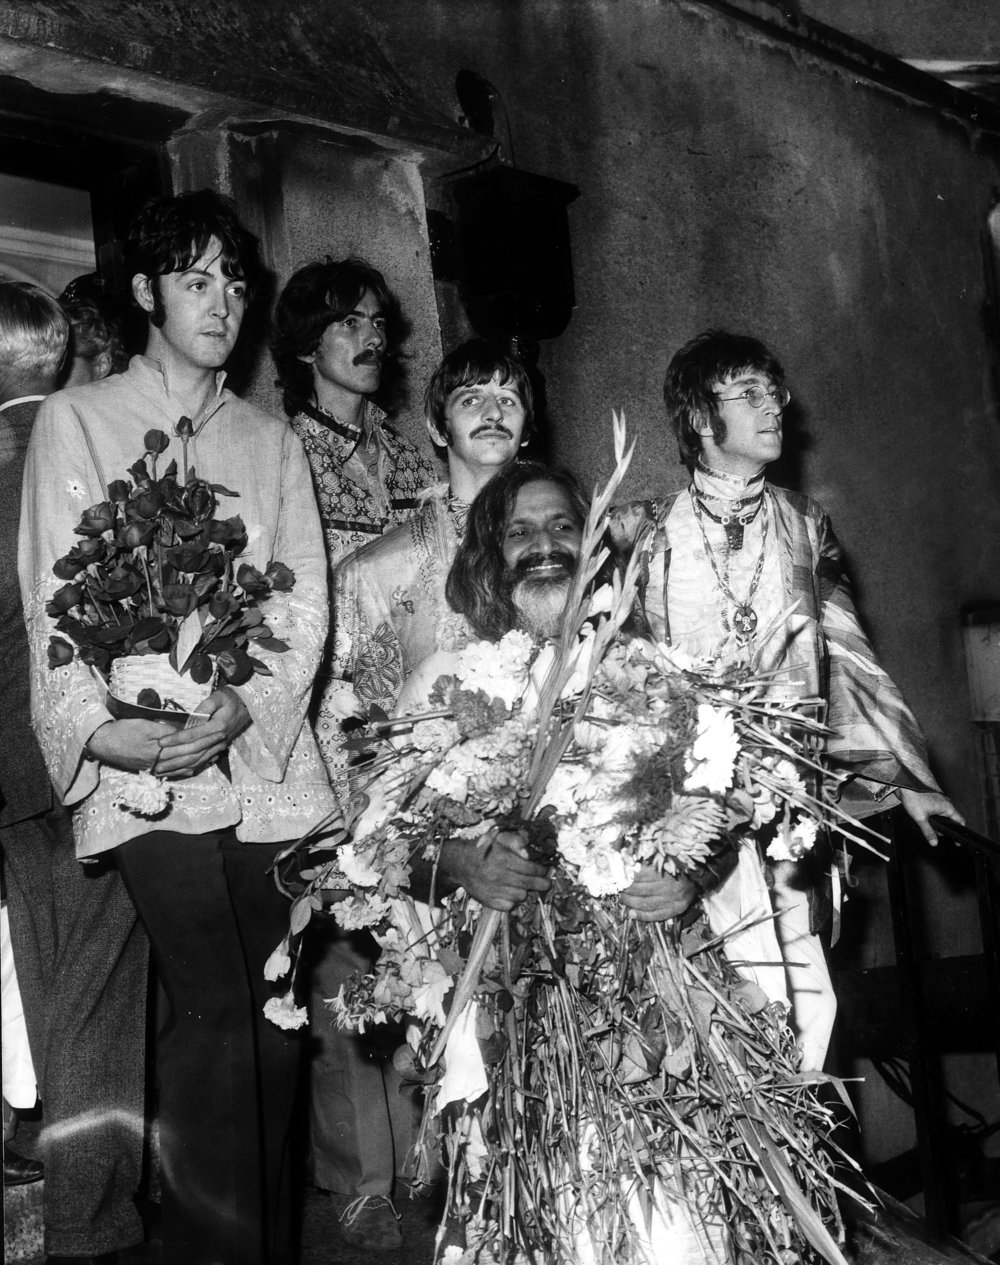 The Beatles and Maharishi Mahesh Yogi in Bangor, Wales, August 1967.